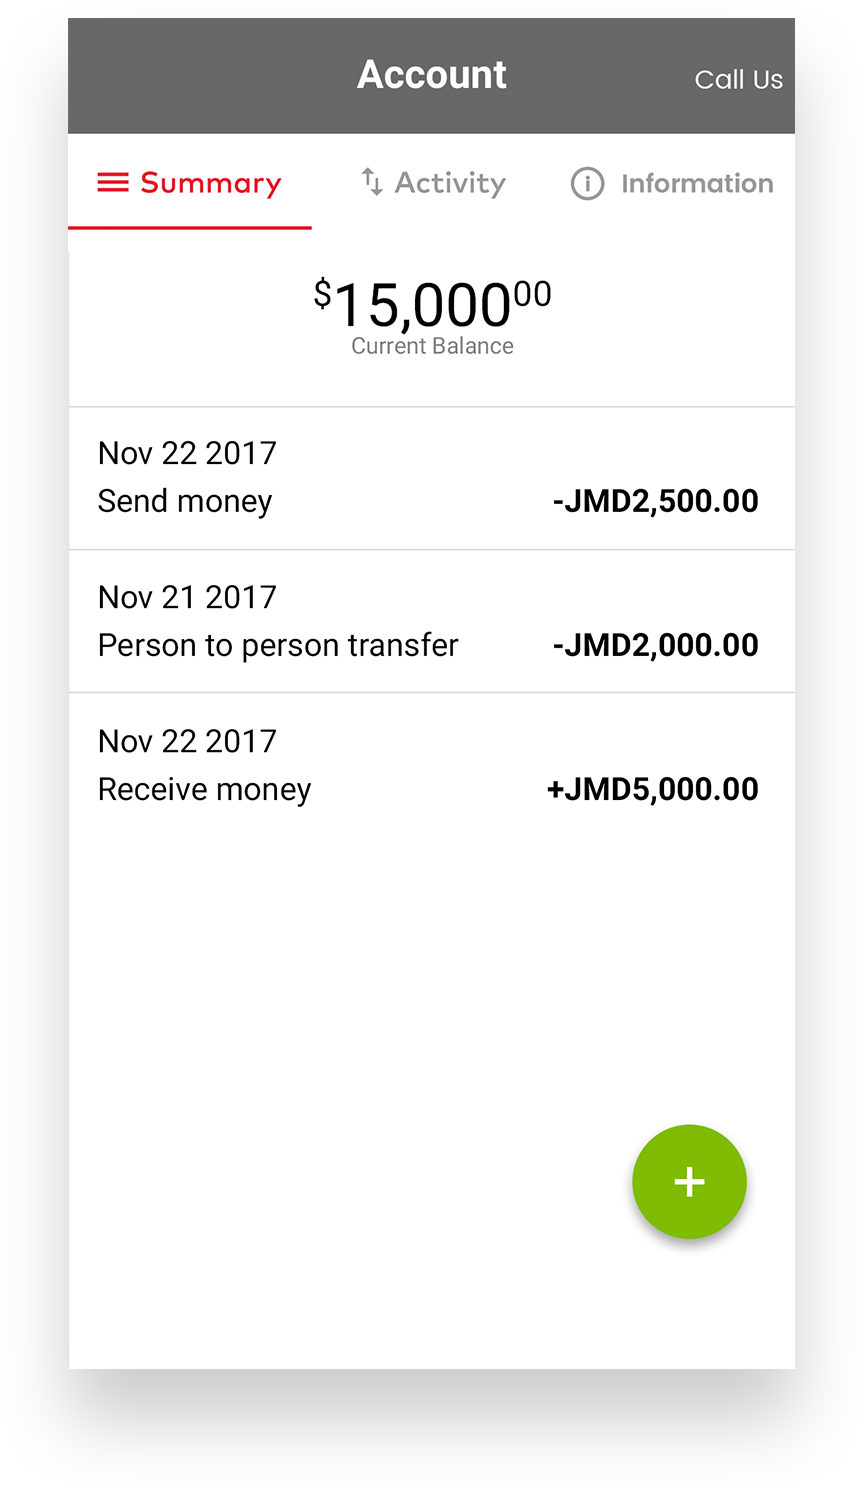 Demo of how to manage money with MyCash